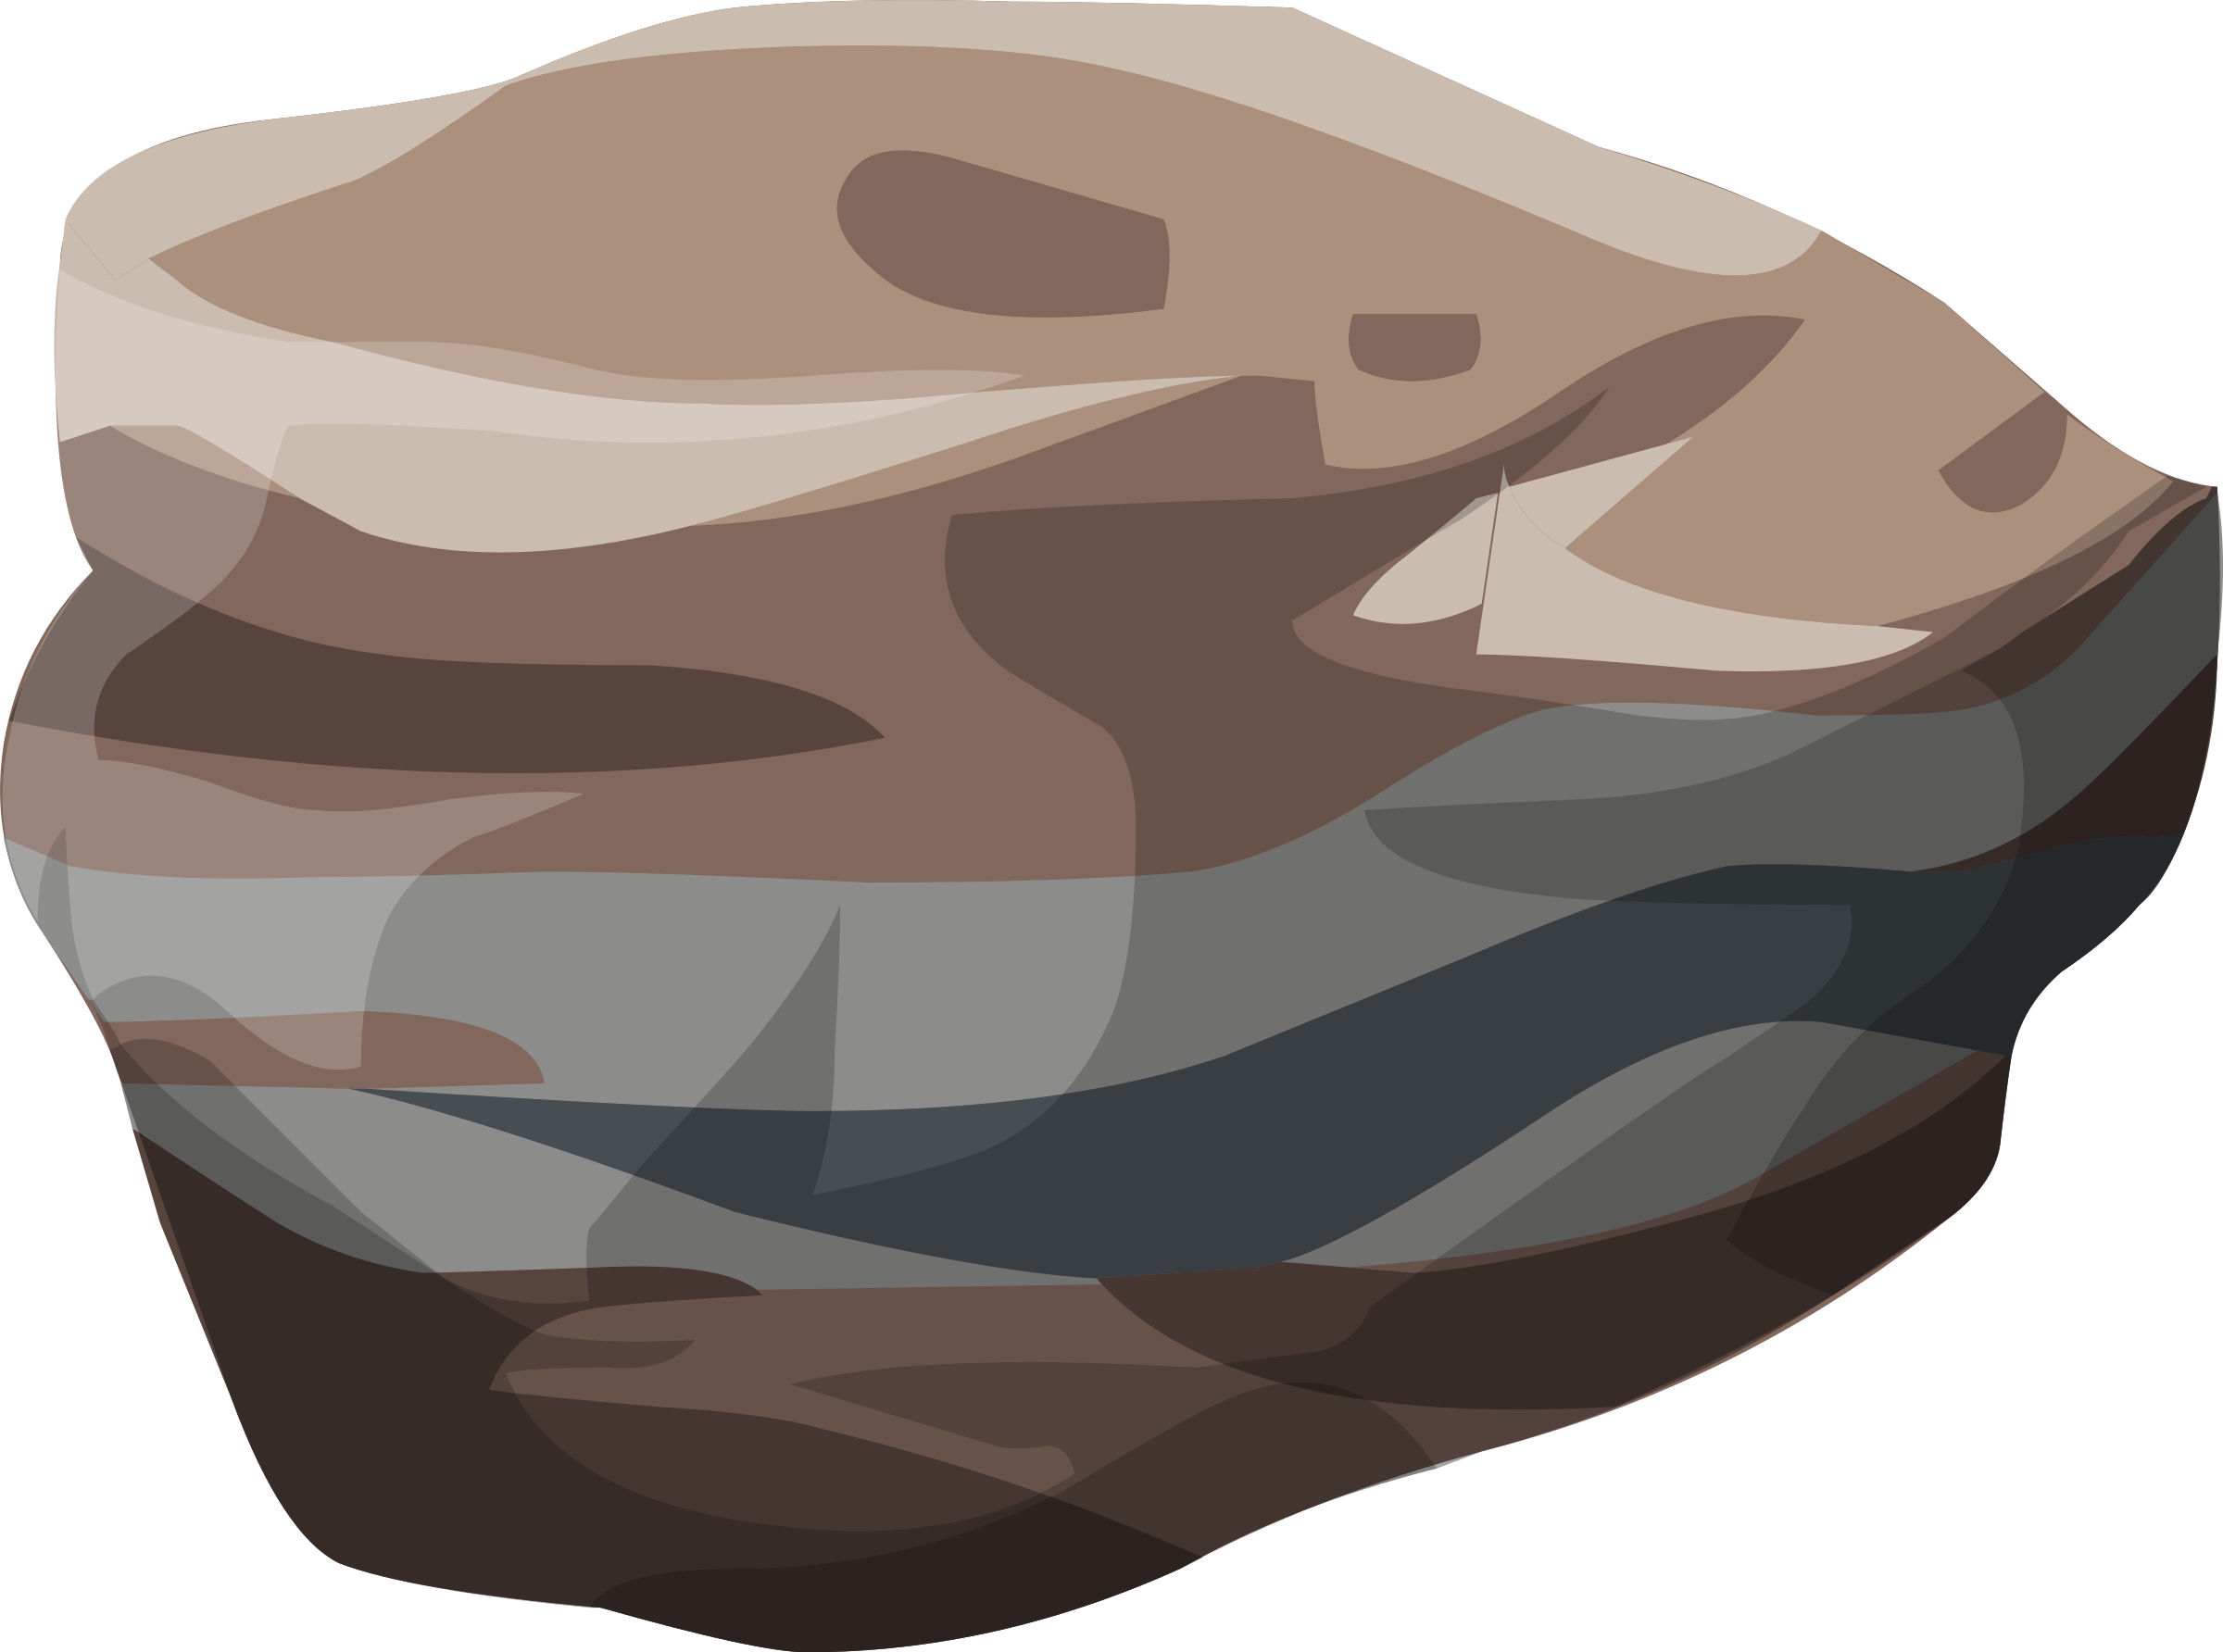 Magma rock clipart